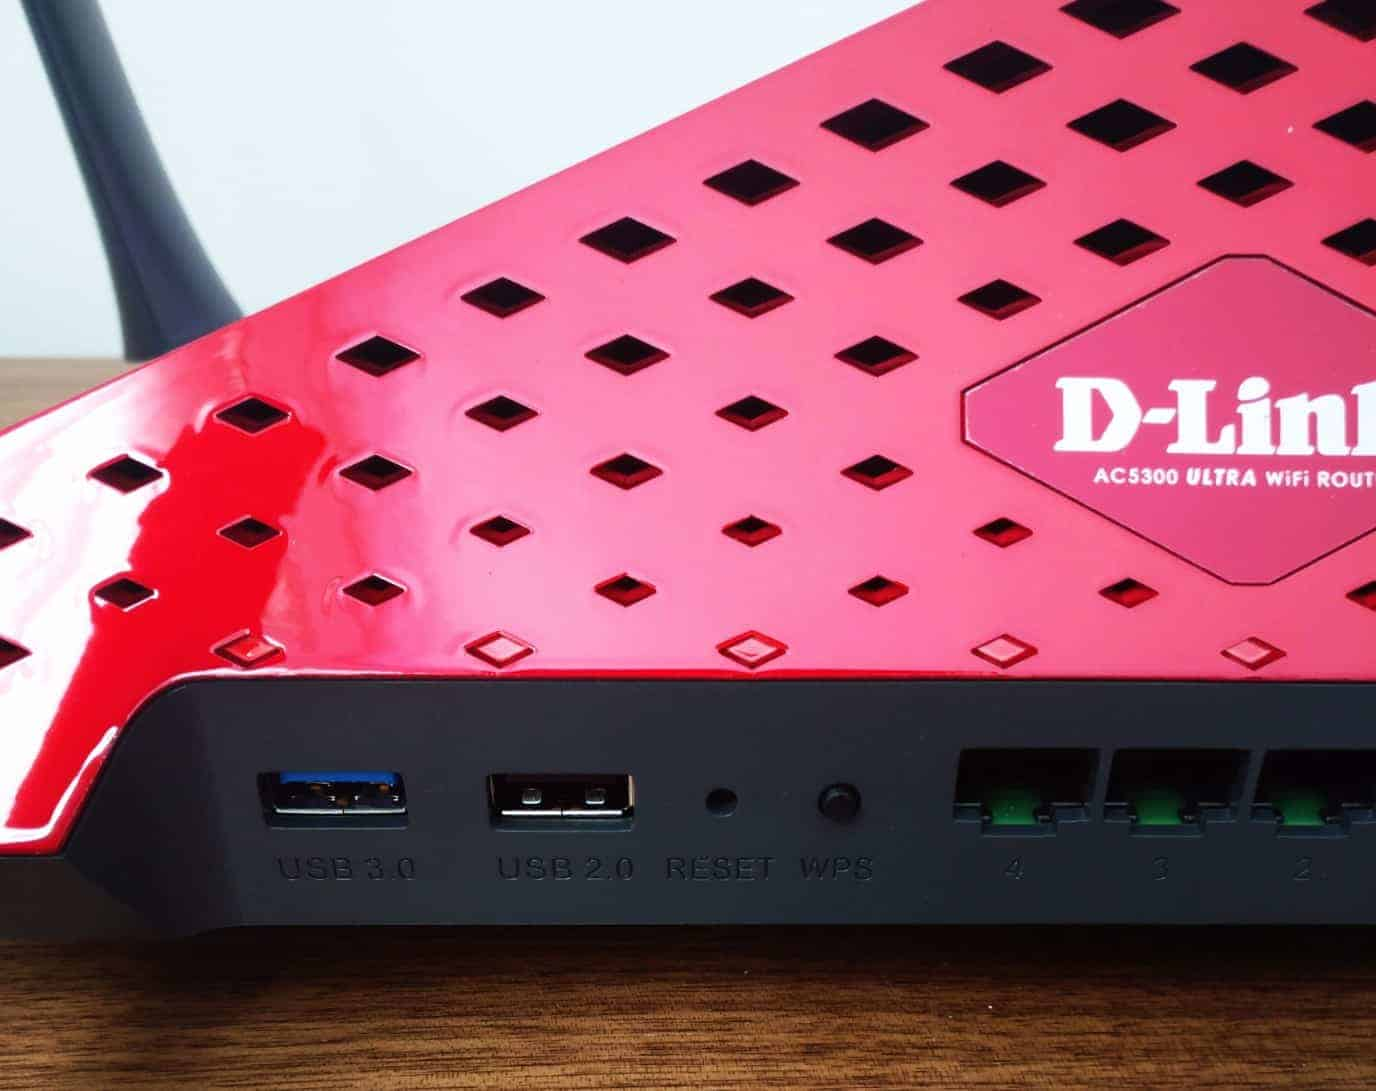 dlink-router-photos-14 D-Link DIR-895L AC5300 MU-MIMO Wi-Fi Router Review